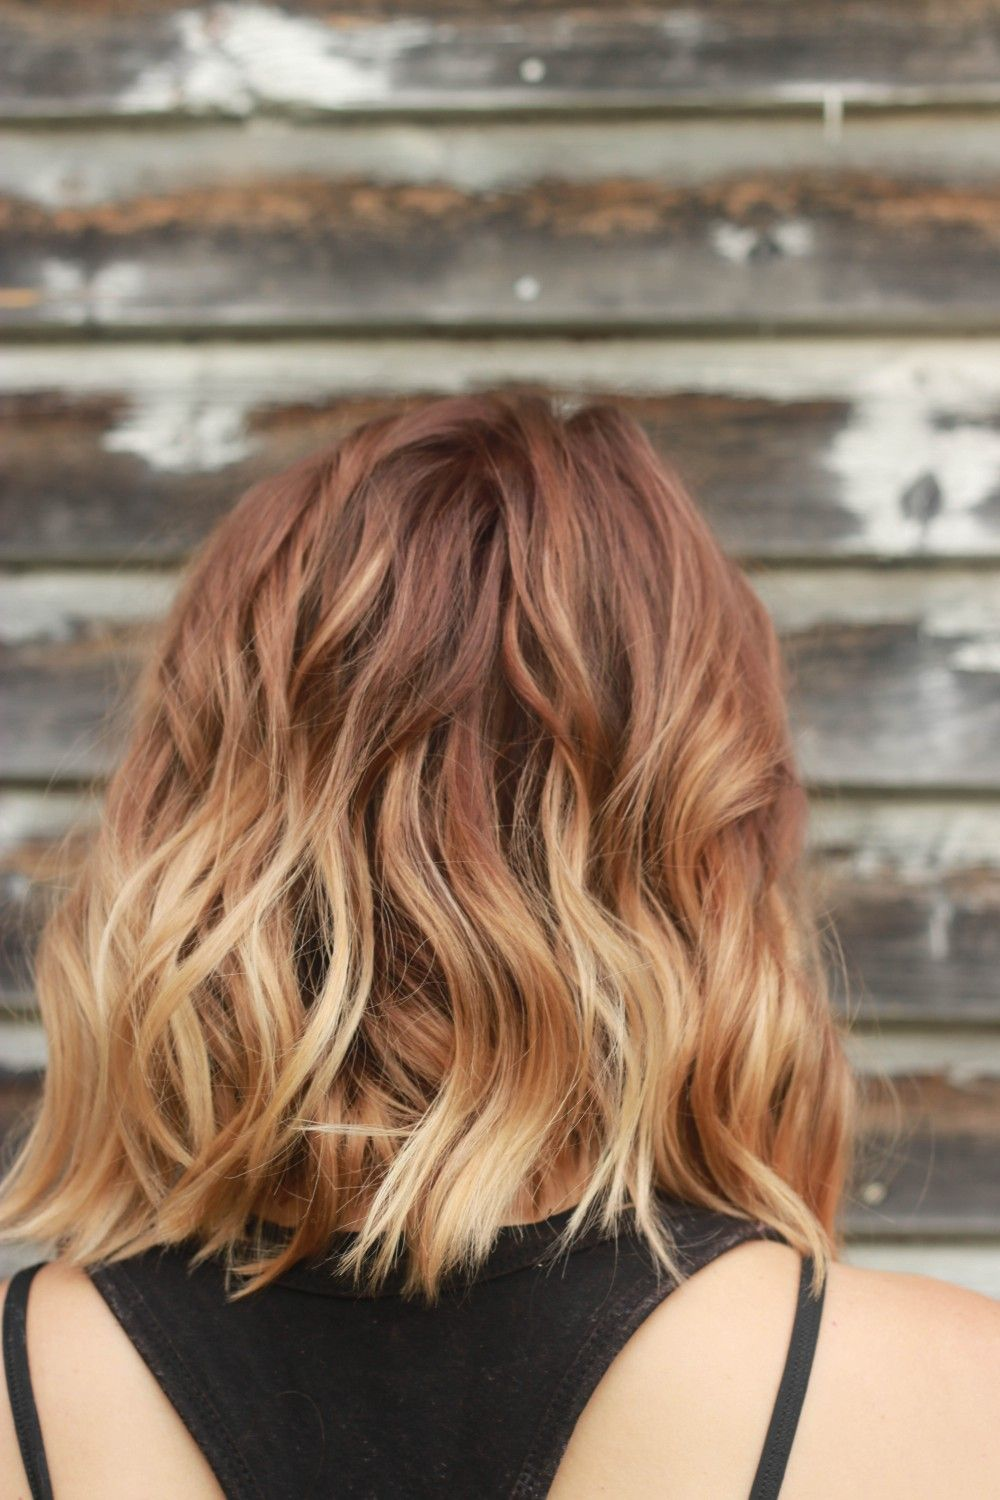 Kenra demi color with 9vol 6RC root melt into 7BC melt